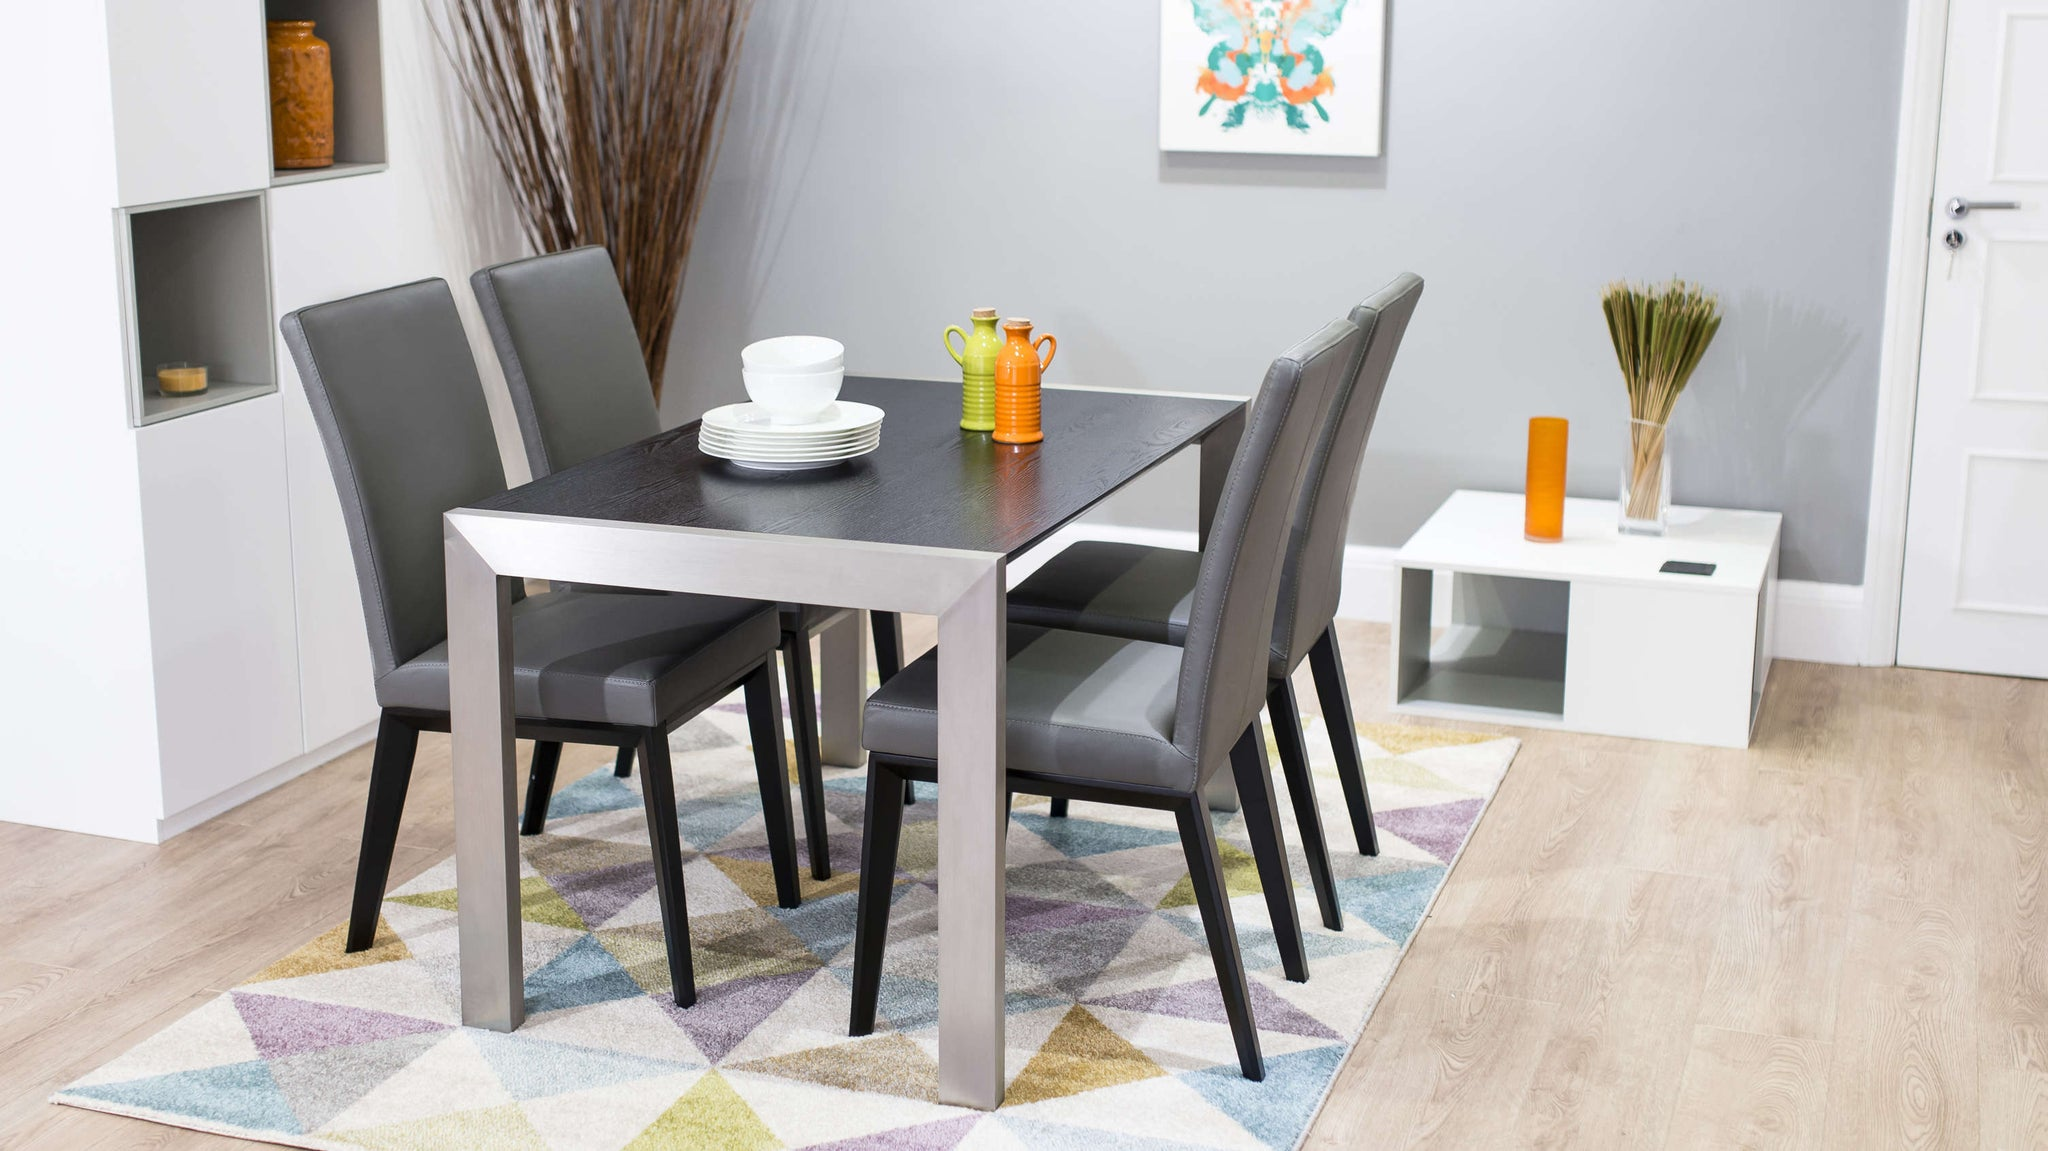 Grey Real Leather Dining Chairs and Brushed Metal Dining Table